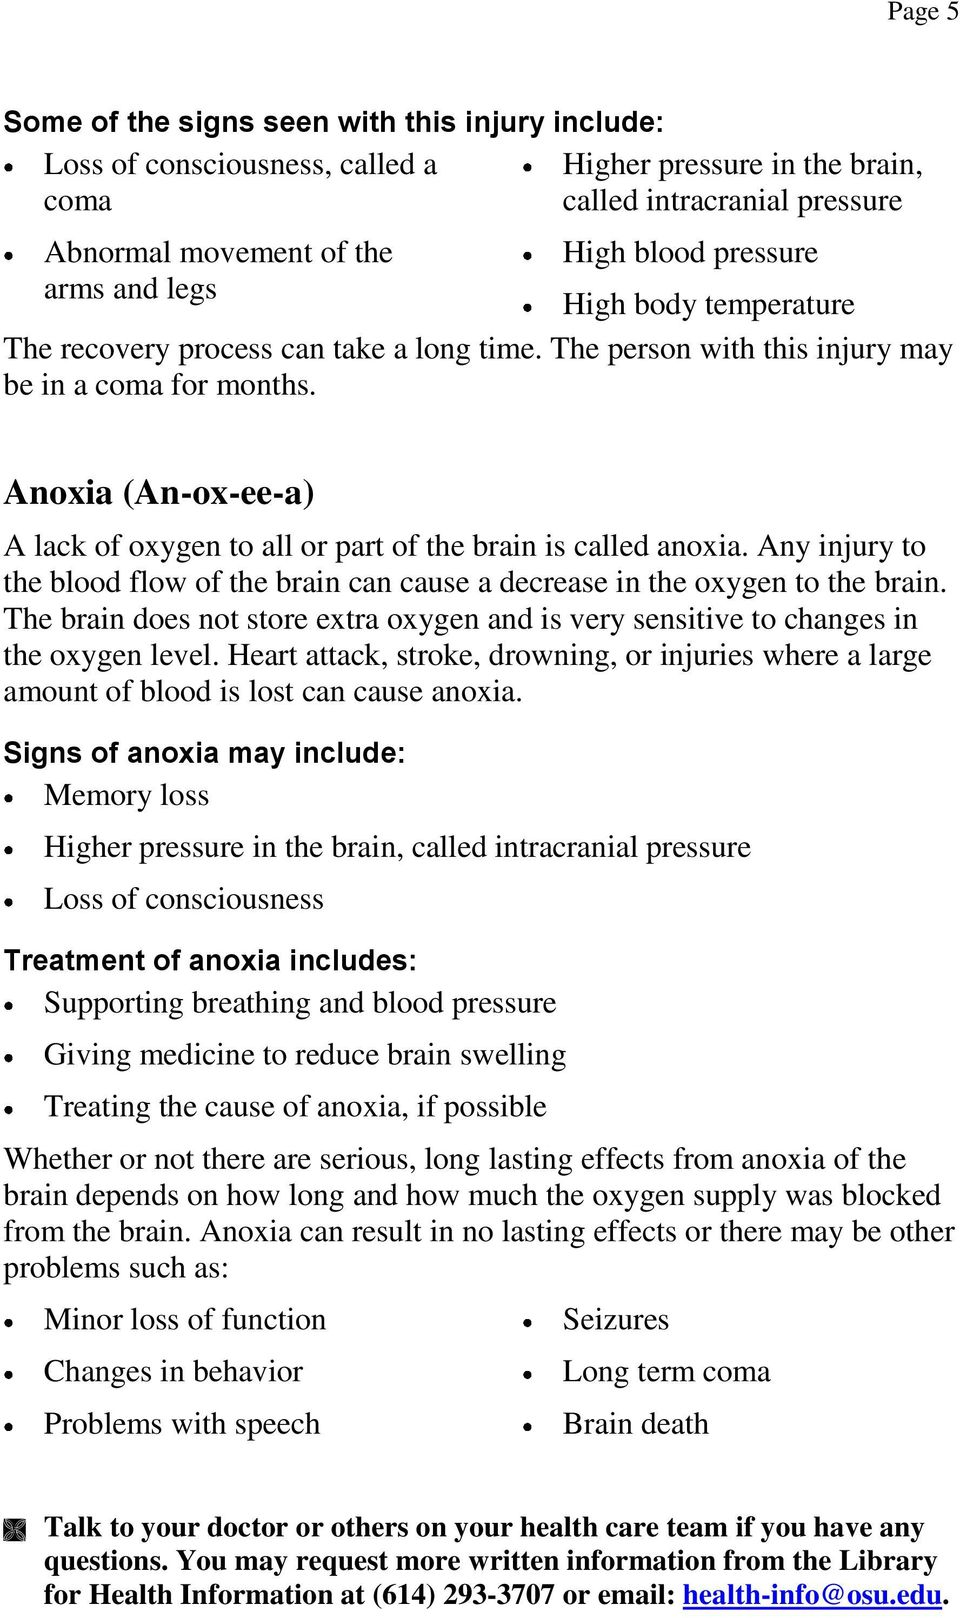 Anoxia (An-ox-ee-a) A lack of oxygen to all or part of the brain is called anoxia. Any injury to the blood flow of the brain can cause a decrease in the oxygen to the brain.